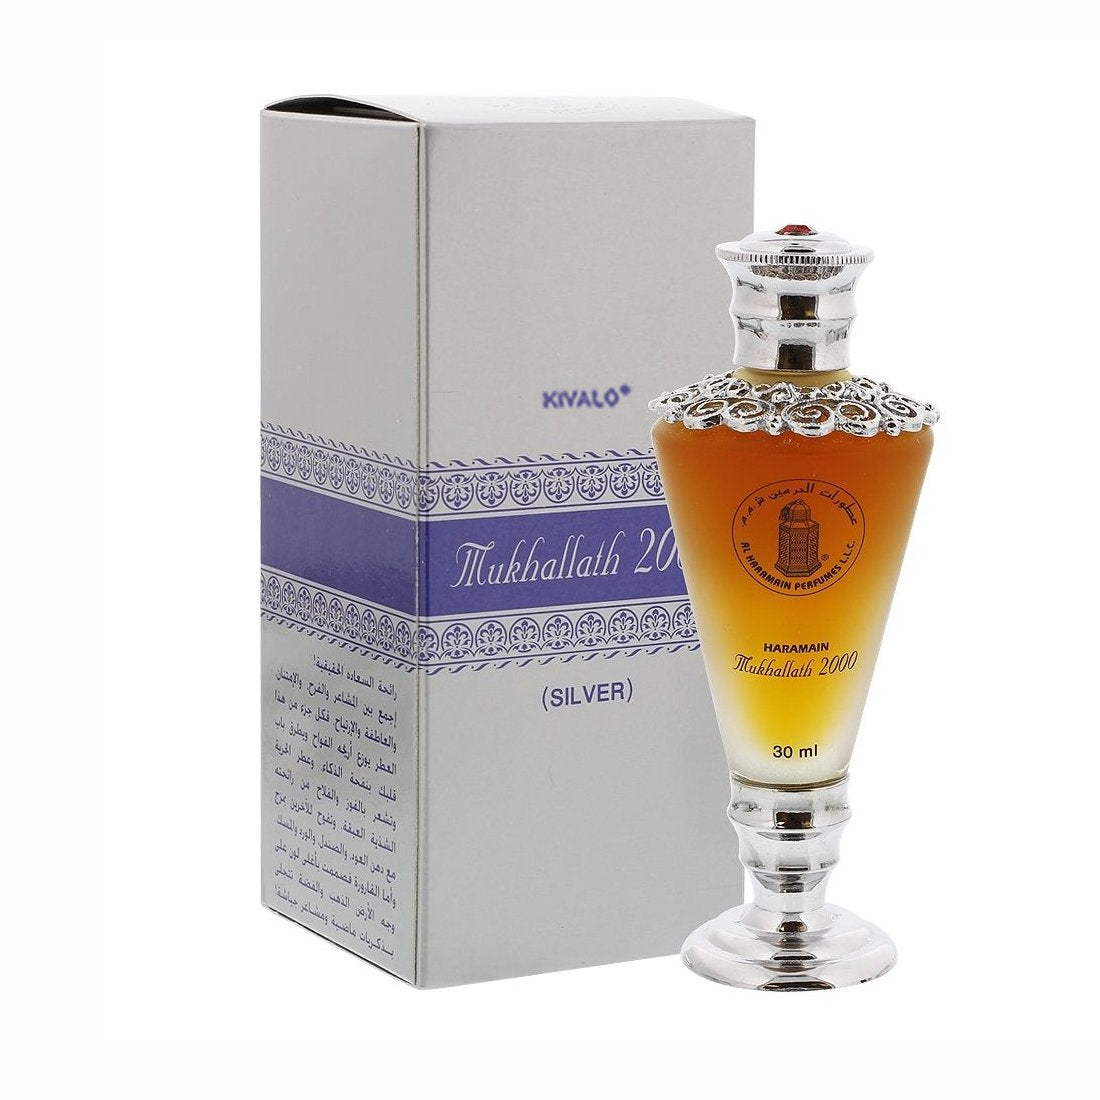 Al Haramain Mukhallath 2000 (SILVER) Fragrance Pure Original Eau de Perfume (Spray) - 50 ml